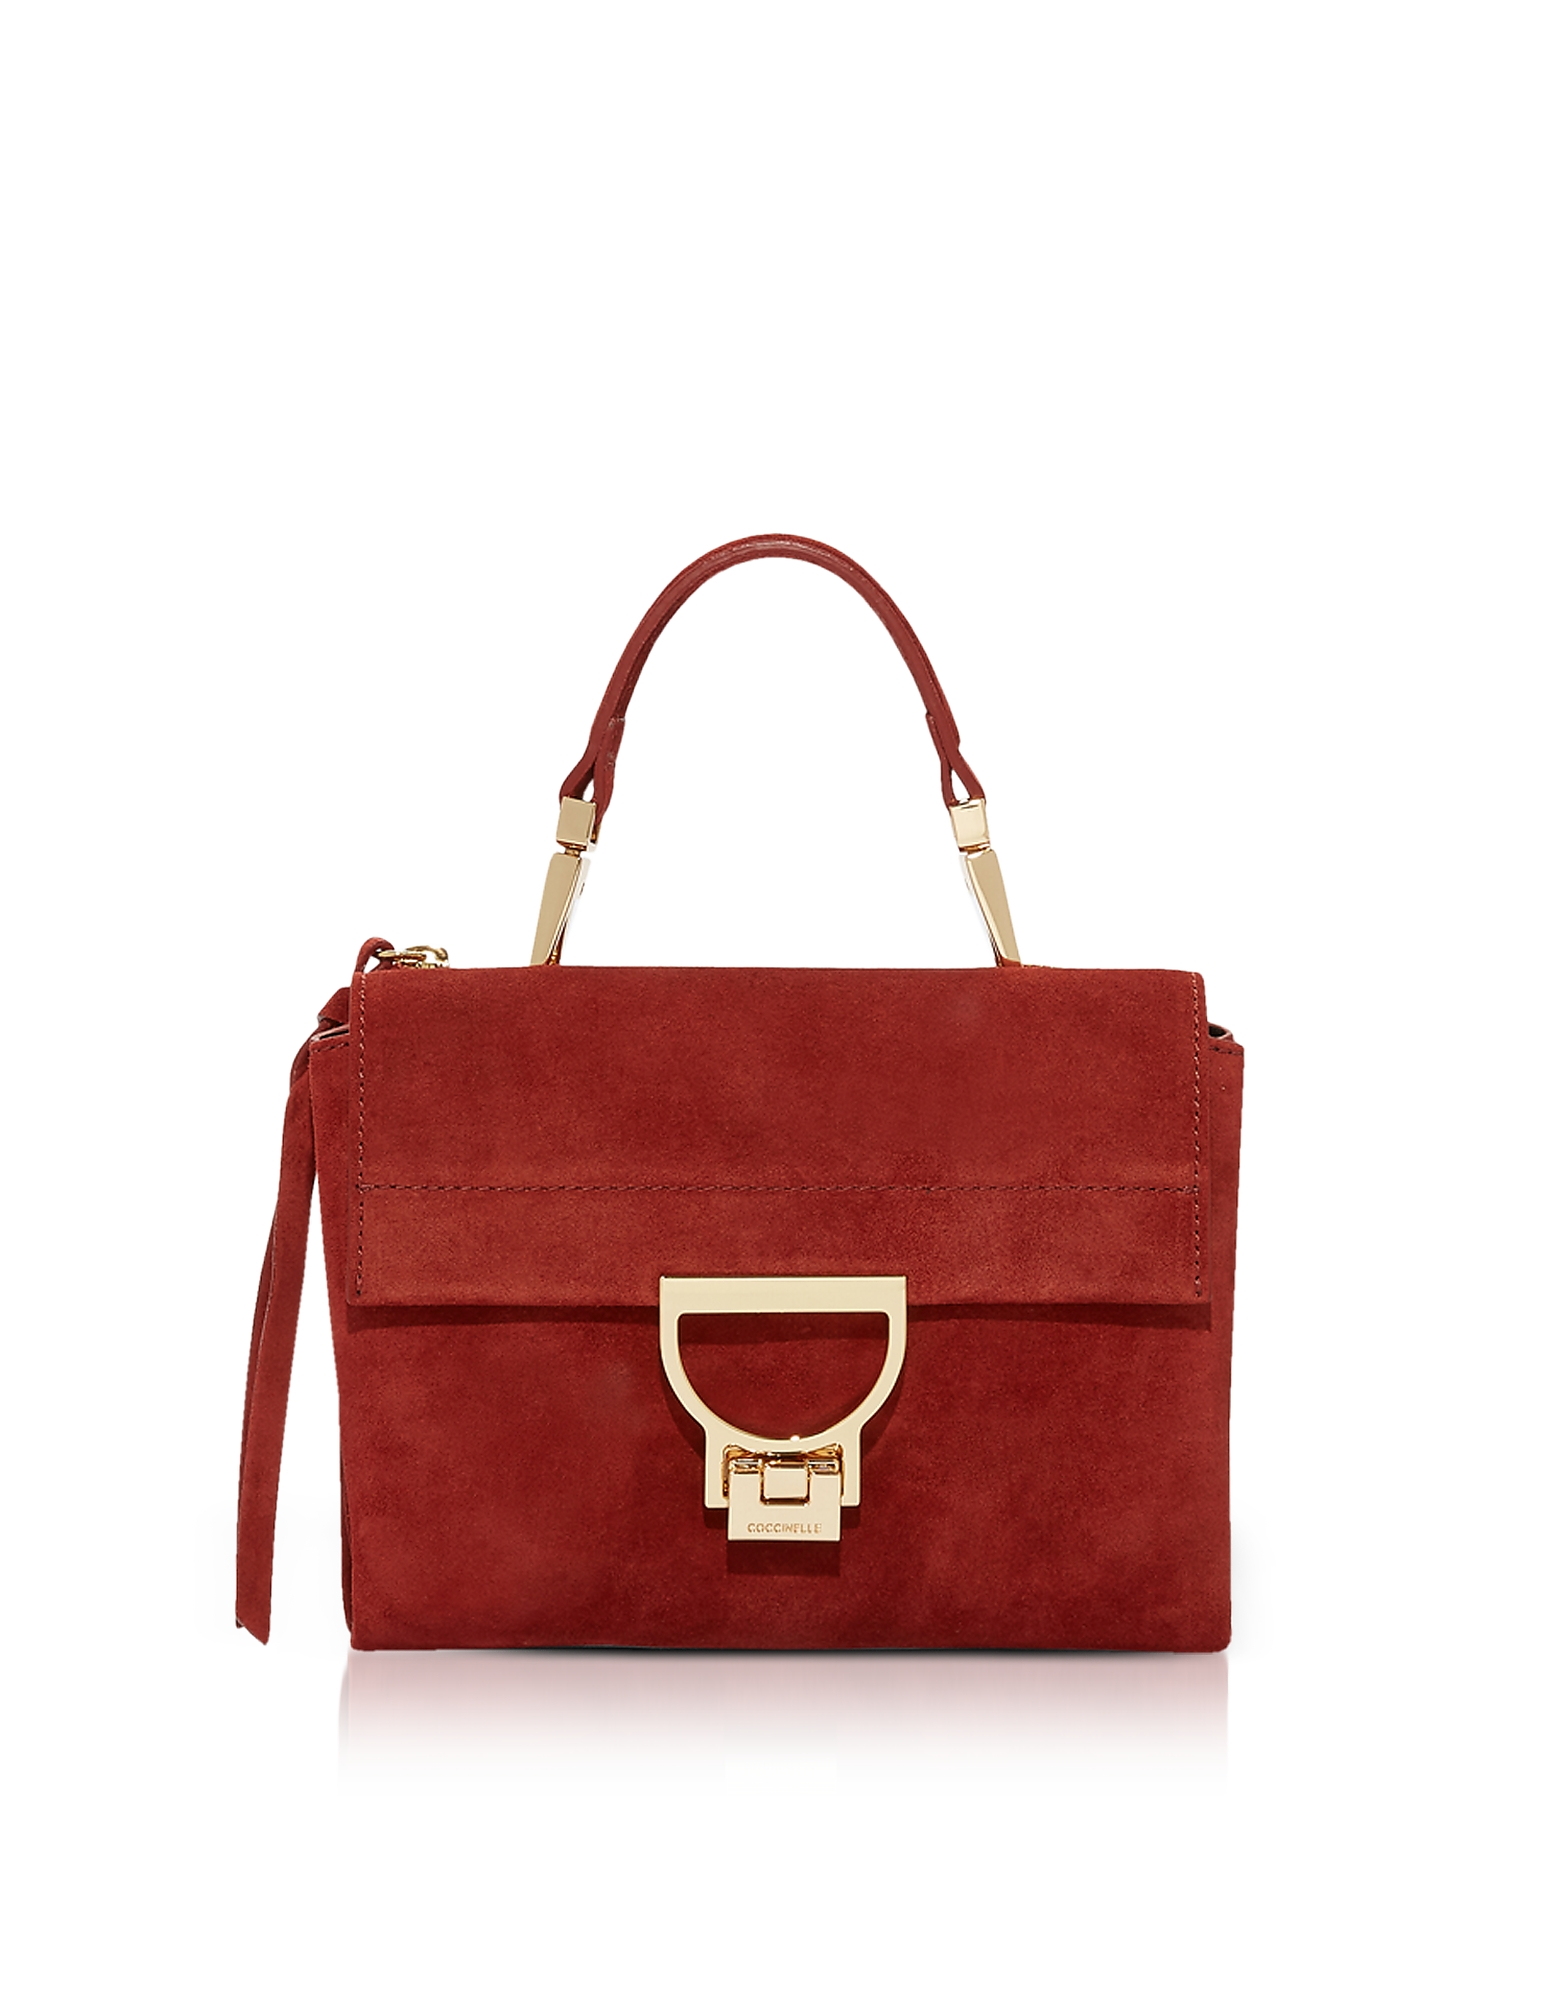 COCCINELLE ARLETTIS MINI SUEDE BAG WITH SHOULDER STRAP